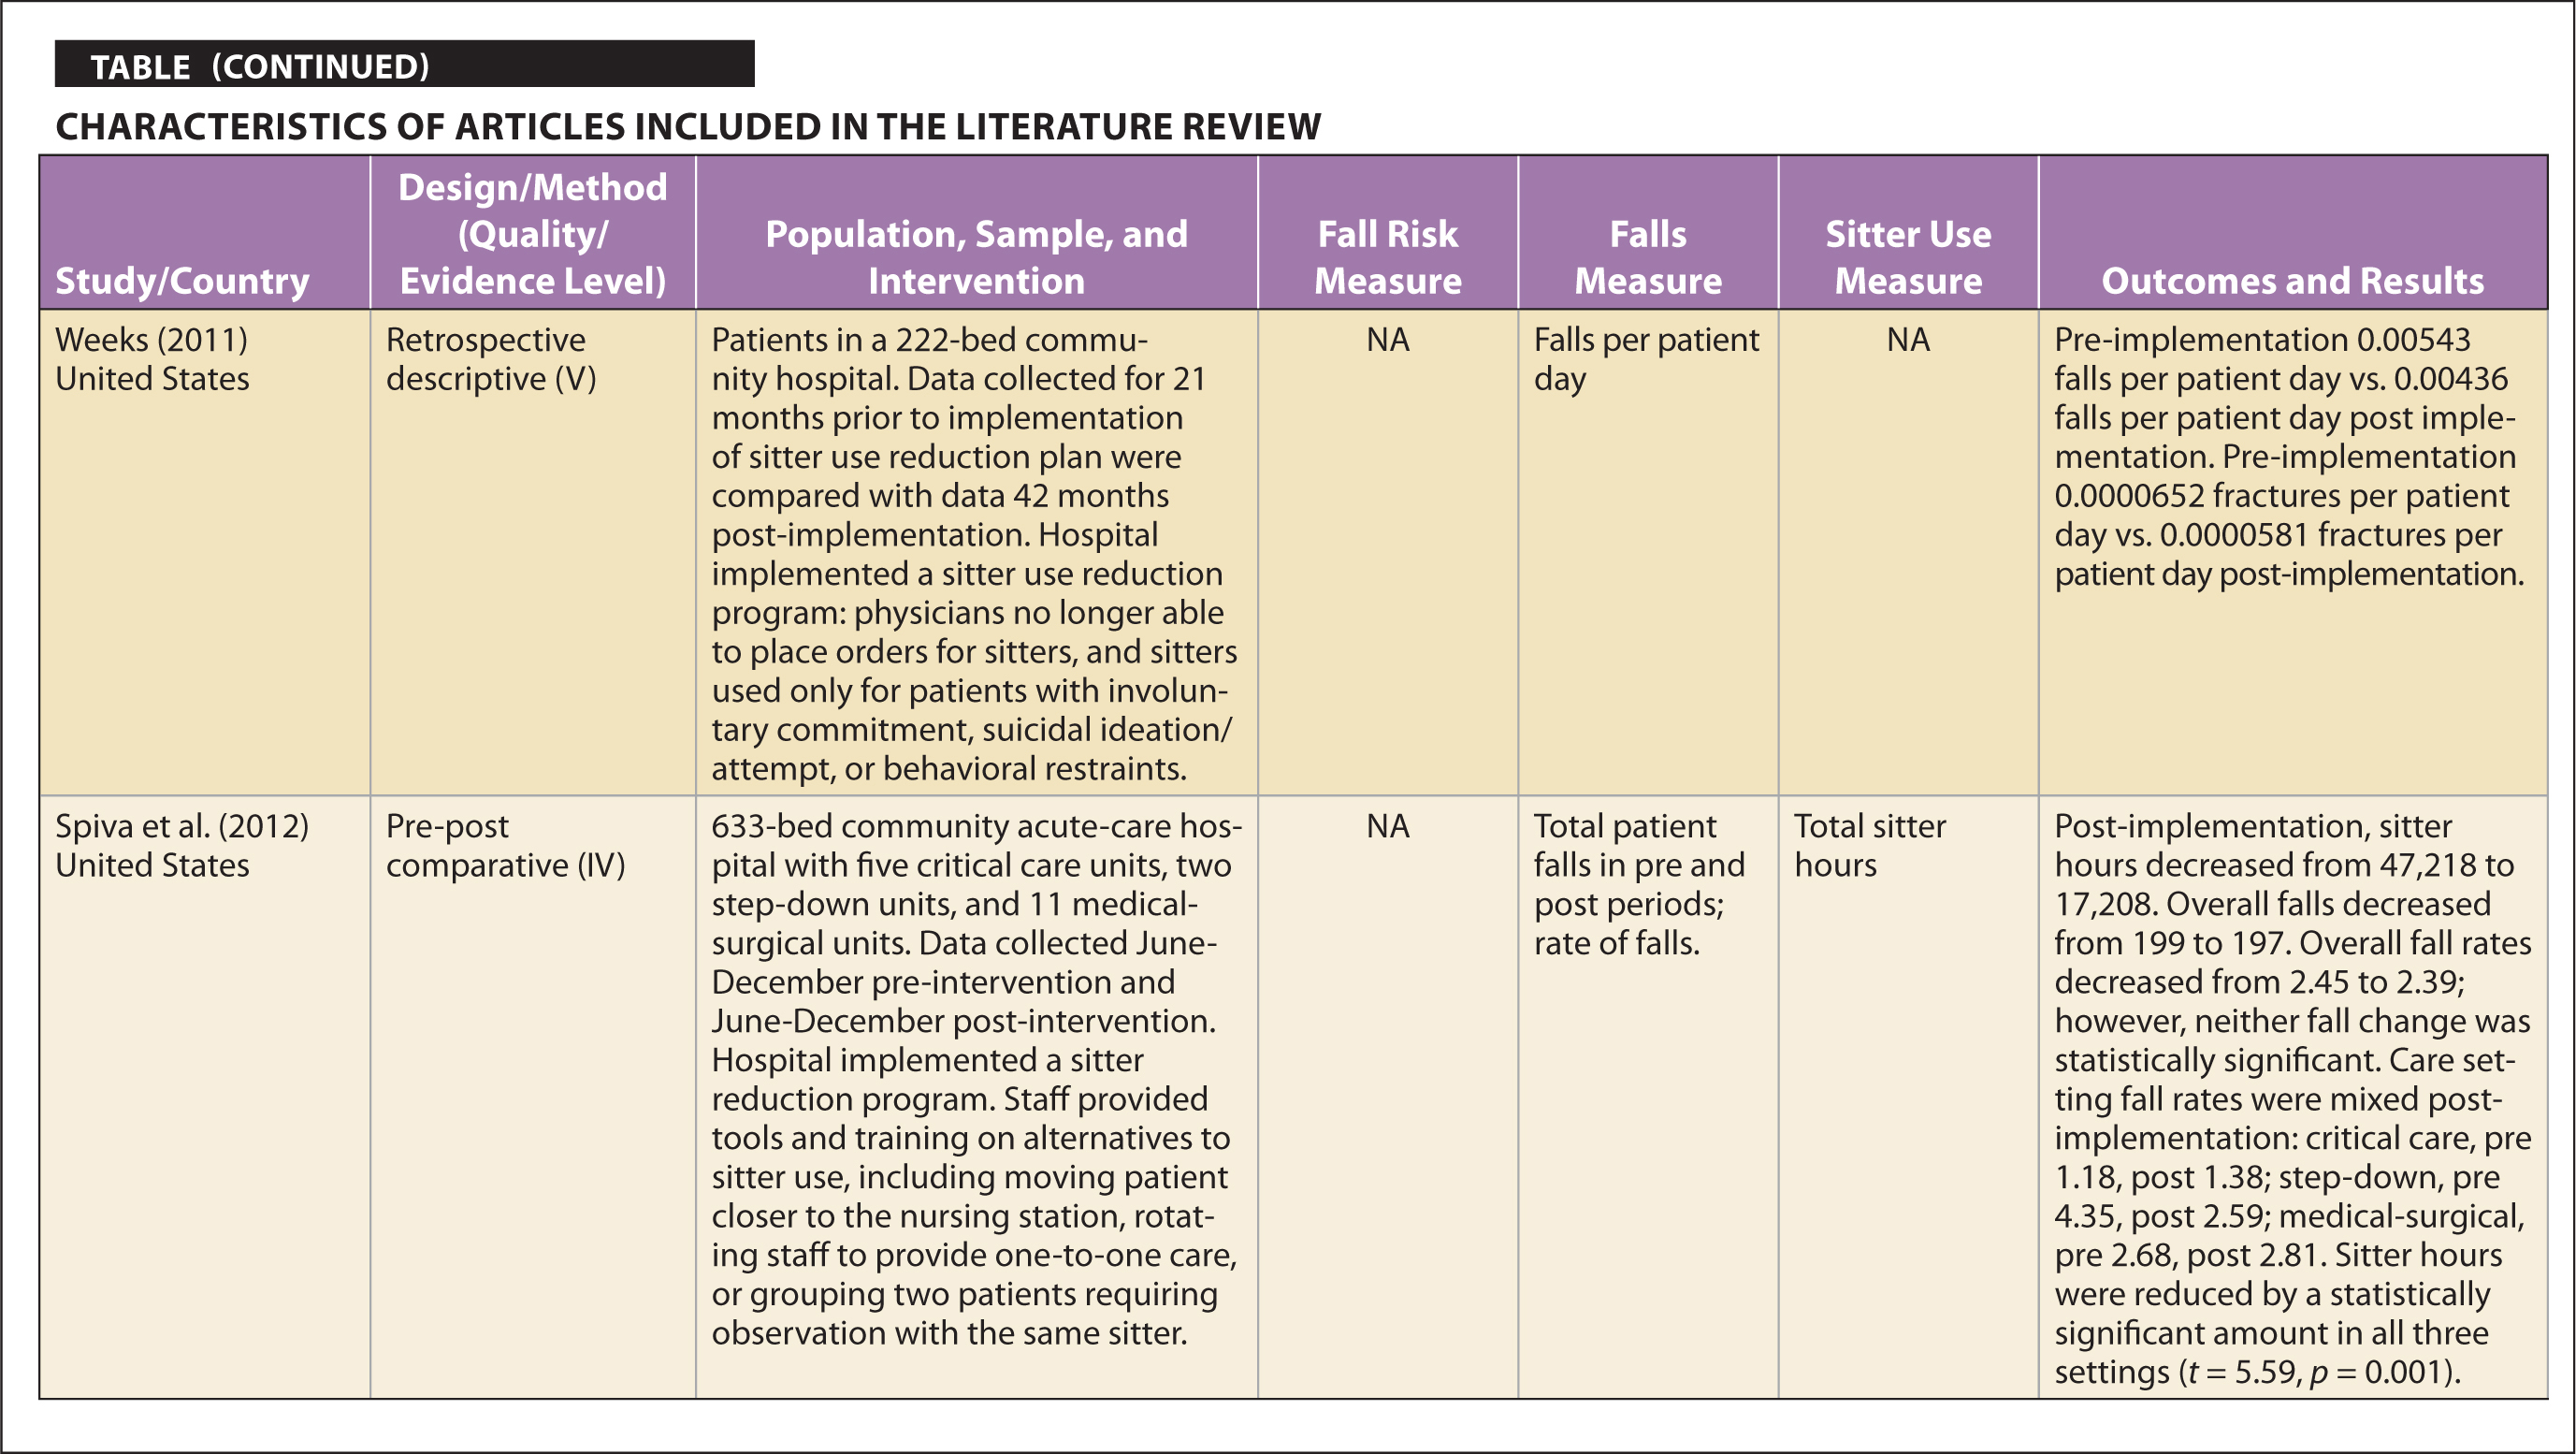 Characteristics of Articles Included in the Literature Review